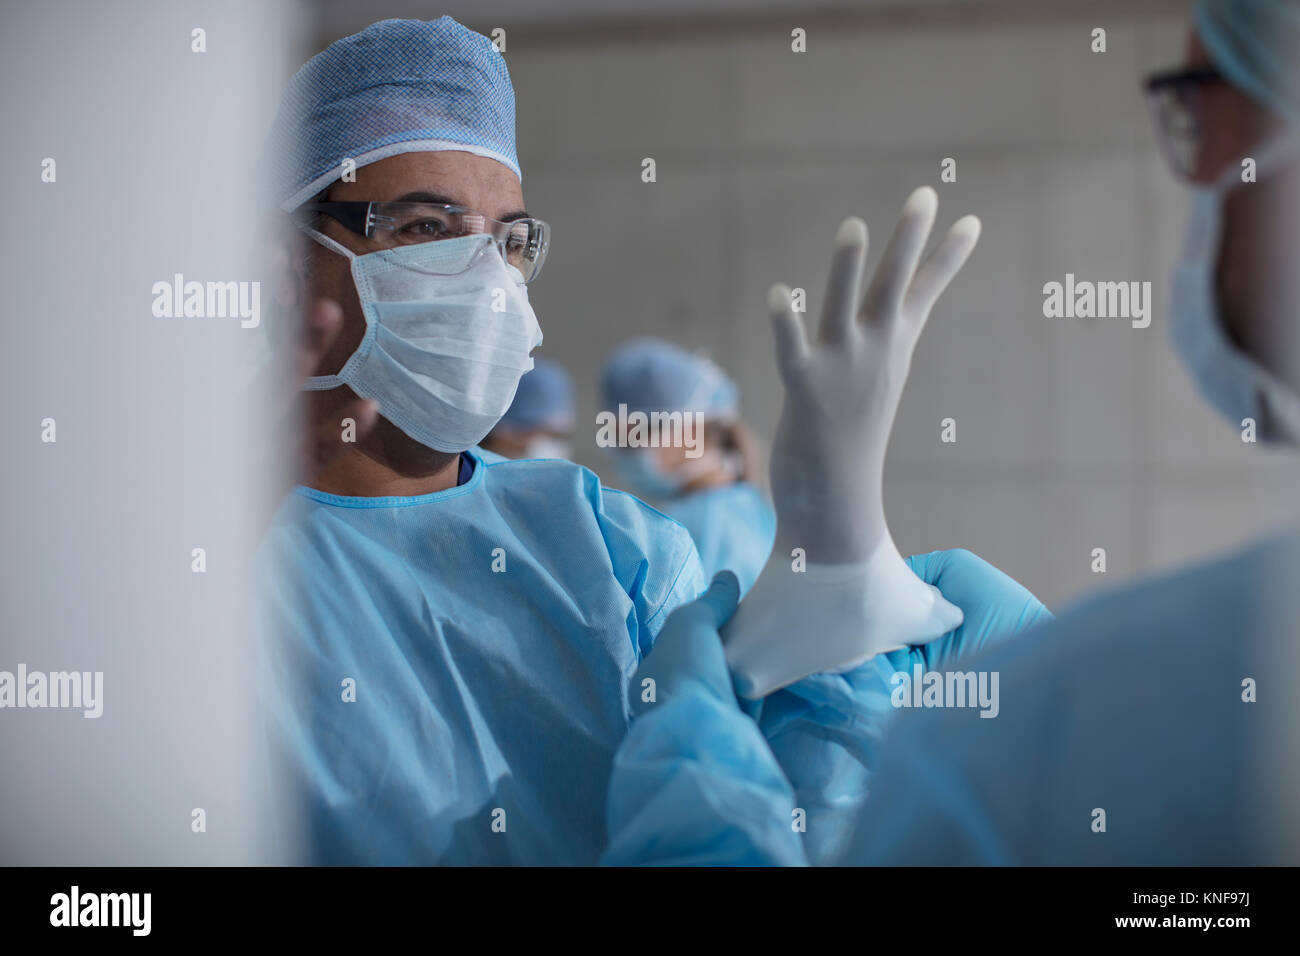 Surgeons preparing for surgery, putting on latex gloves - Stock Image